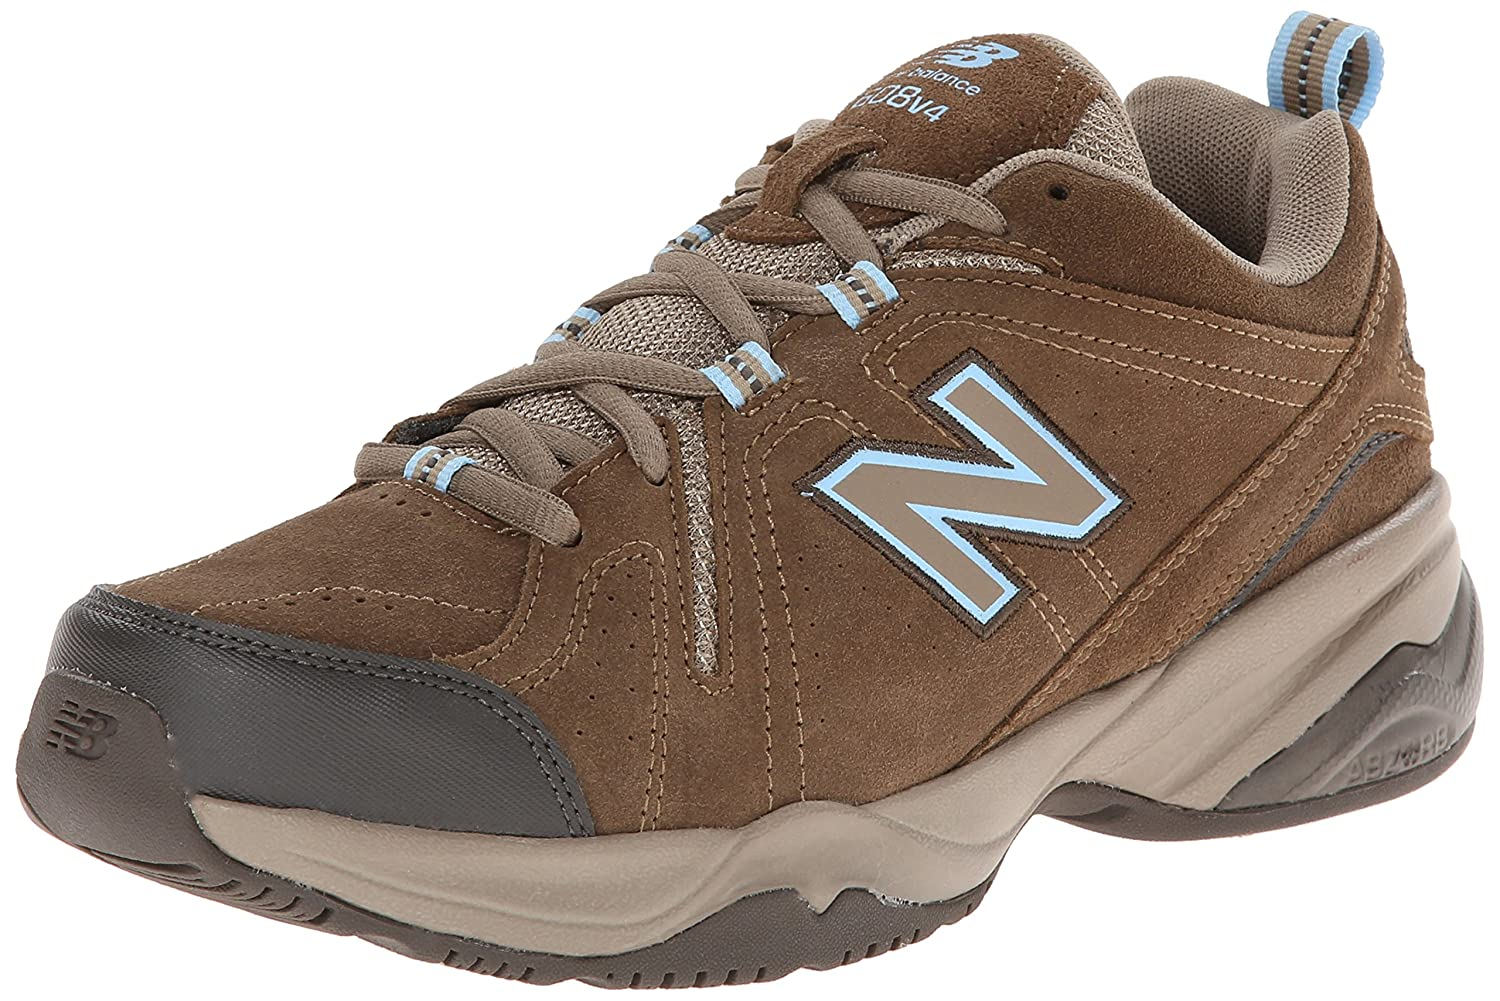 New Balance Mujeres Wx608v Bajos & Medios Cordon NEED TRANSLATION, , Talla 44 EU B|Marrón